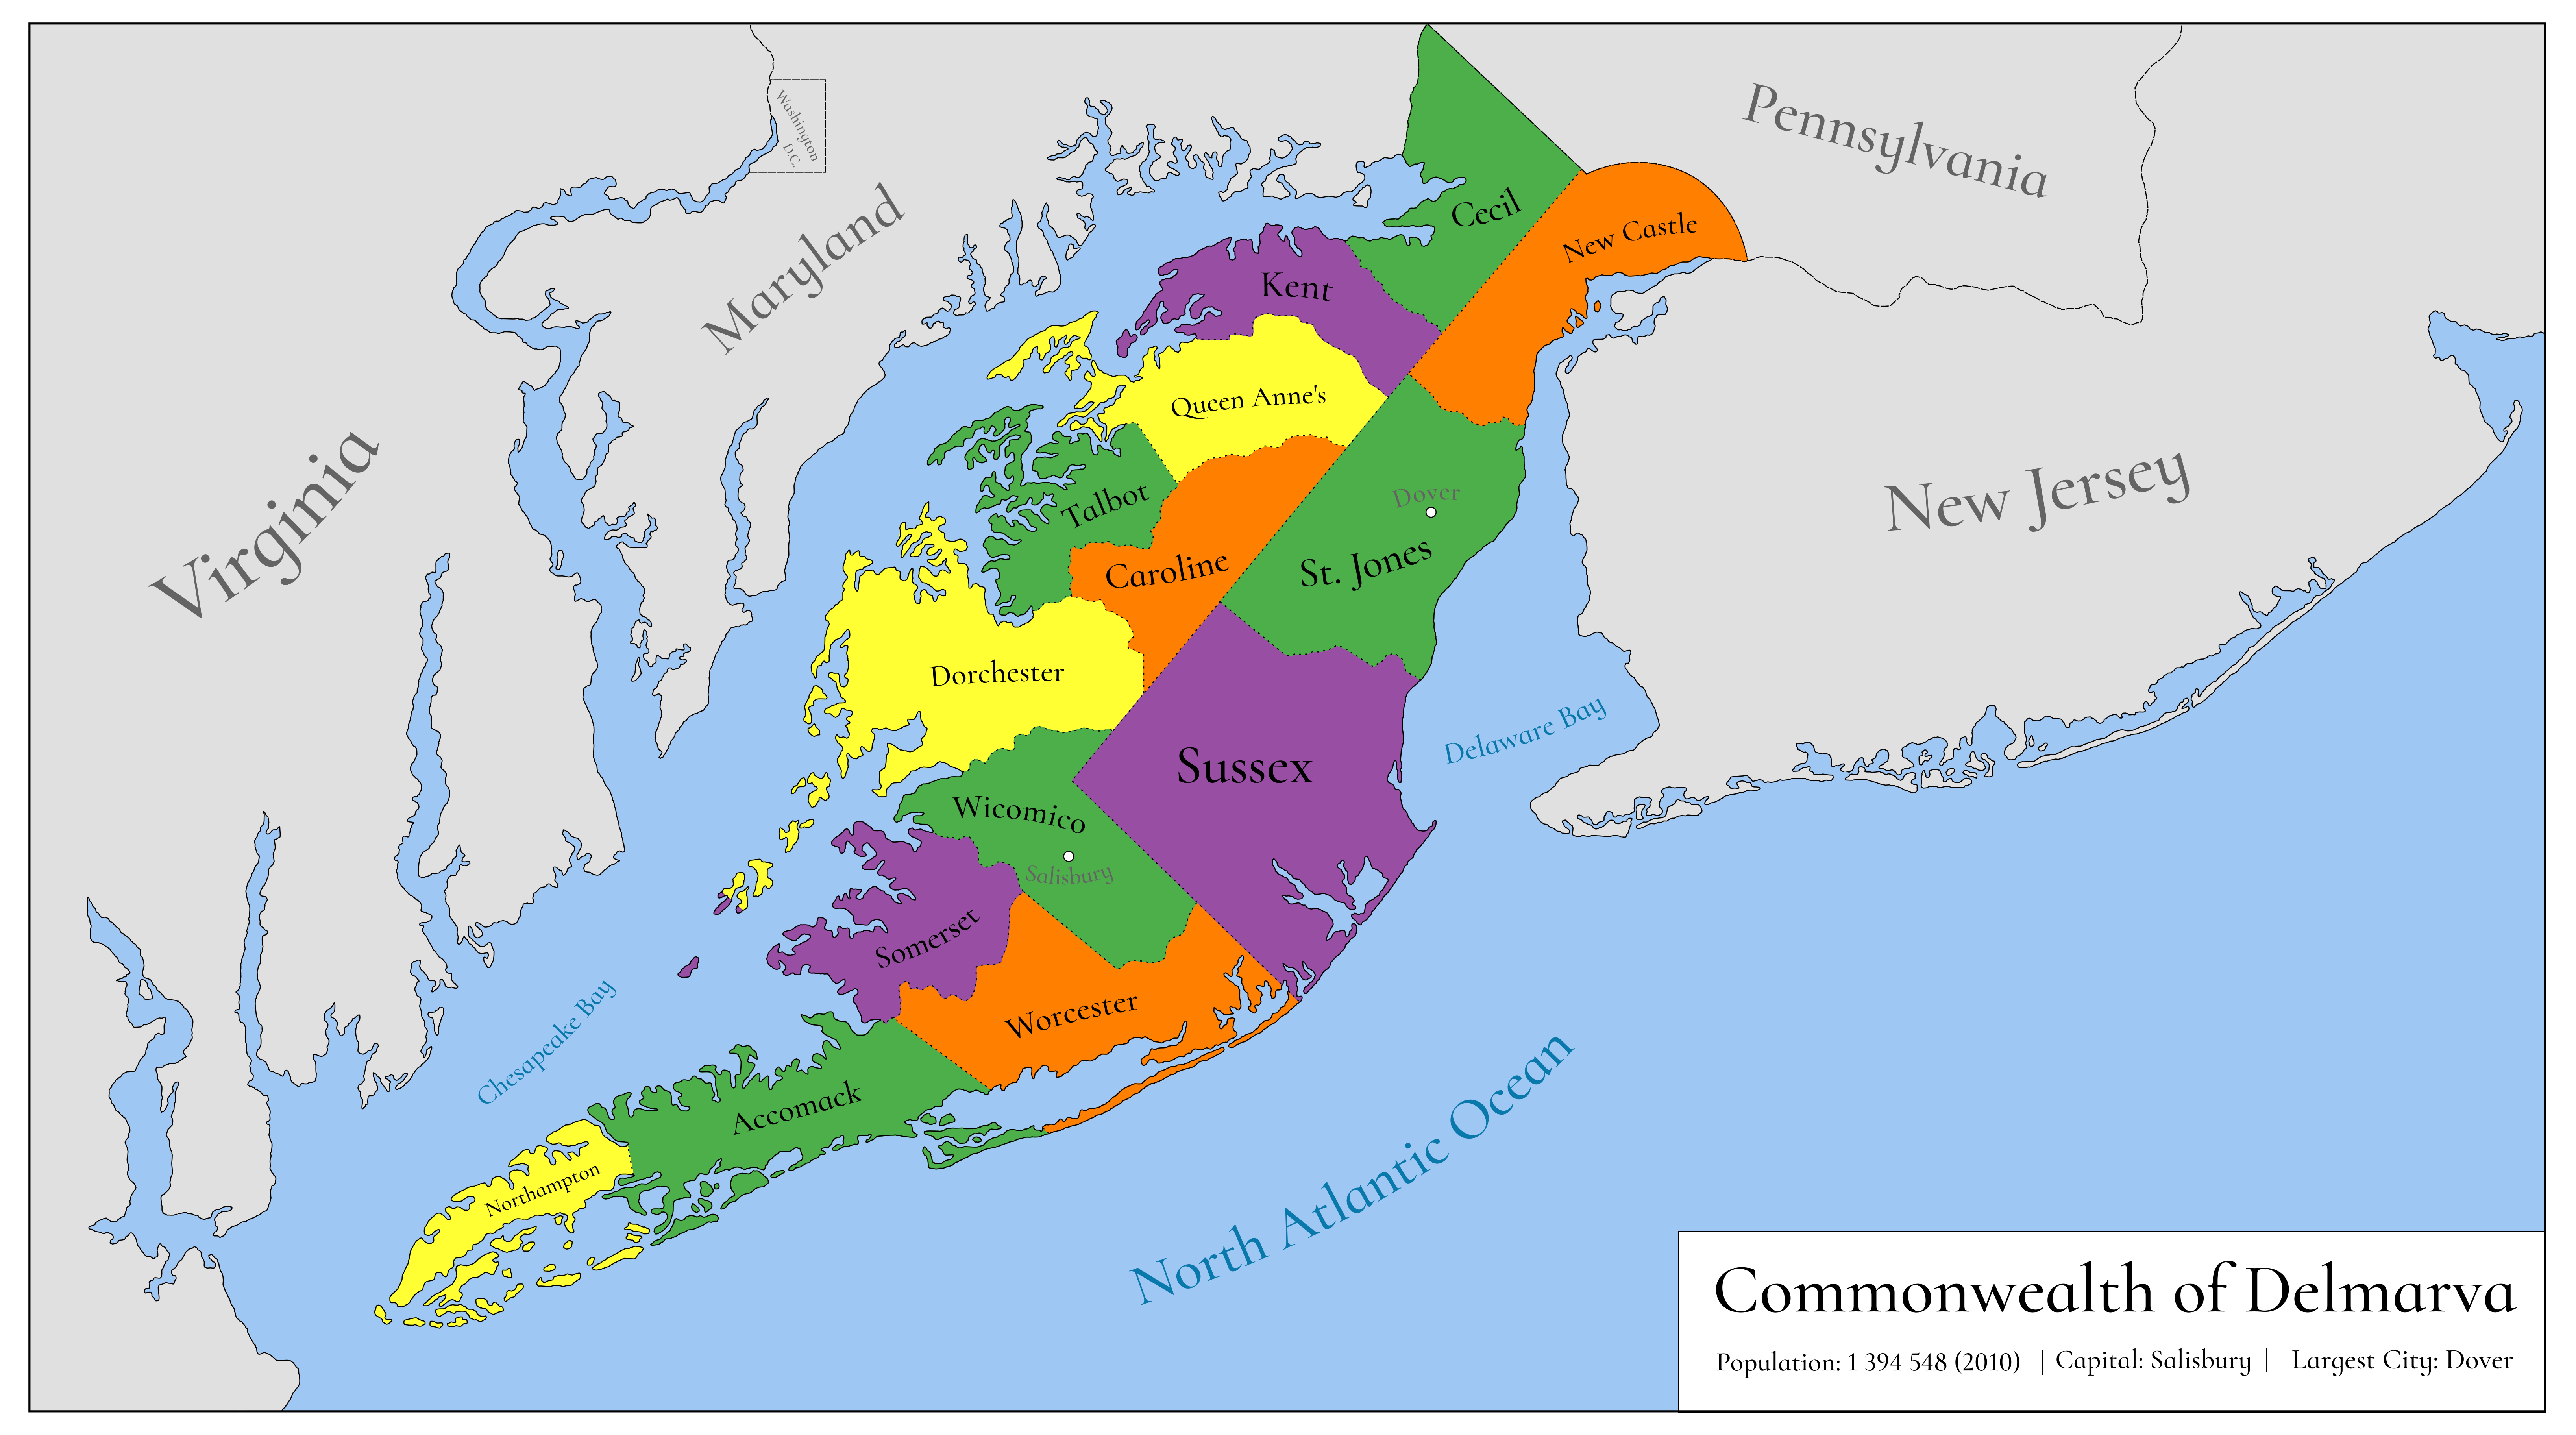 Delmarva (proposed state) by Luis2100PT on DeviantArt on virginia peninsula, adirondack high peaks map, dominion power service area map, rehoboth beach, delaware map, california shipwreck map, virginia map, northeast us road map, indian river, dewey beach, bethany beach neighborhood map, cape henlopen, olde england map, west va map, east coast map, long island map, state of deseret, gloucester county va map, sussex county, delaware bay, bethany beach, district of columbia statehood movement, middle peninsula, mexico yucatan peninsula map, georgetown de map, new orleans map, md beaches map, lake county map, dc area and surrounding area map, 51st state, maryland map, state of franklin,